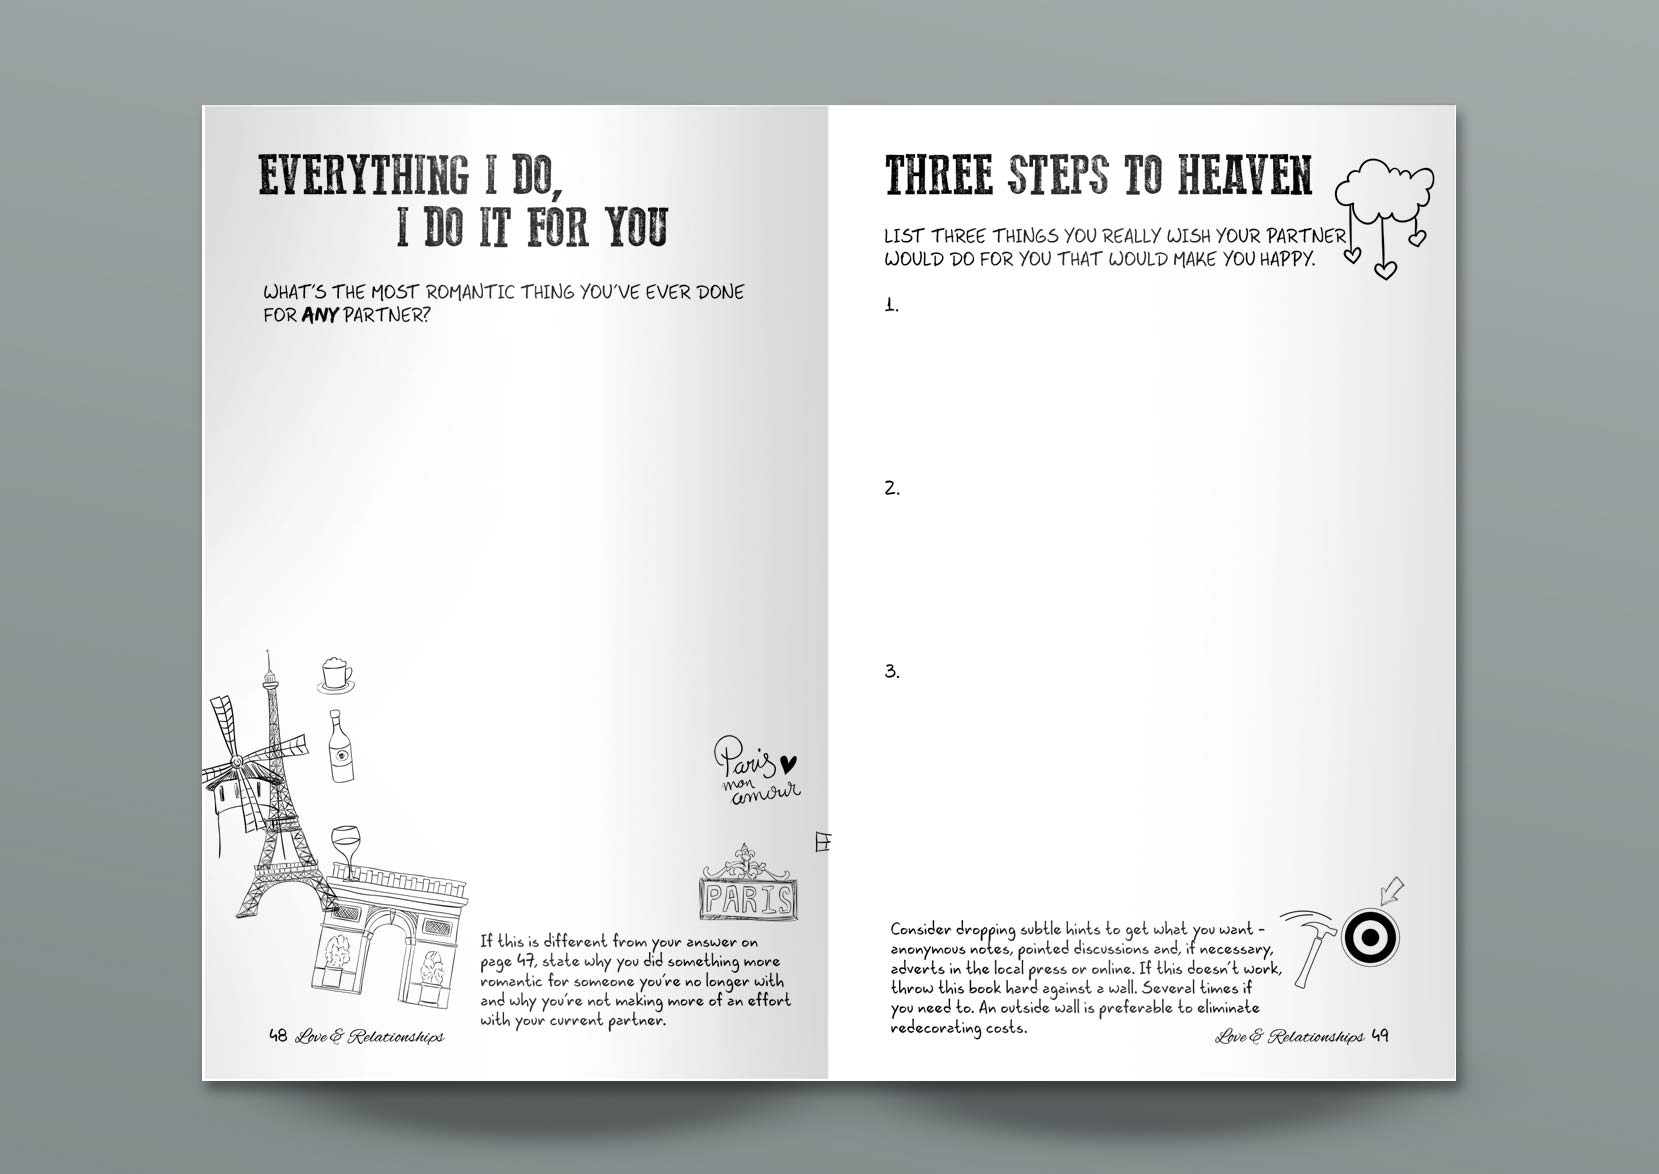 F-ck-Up-THis-Book4_richardbudddesign_web.jpg